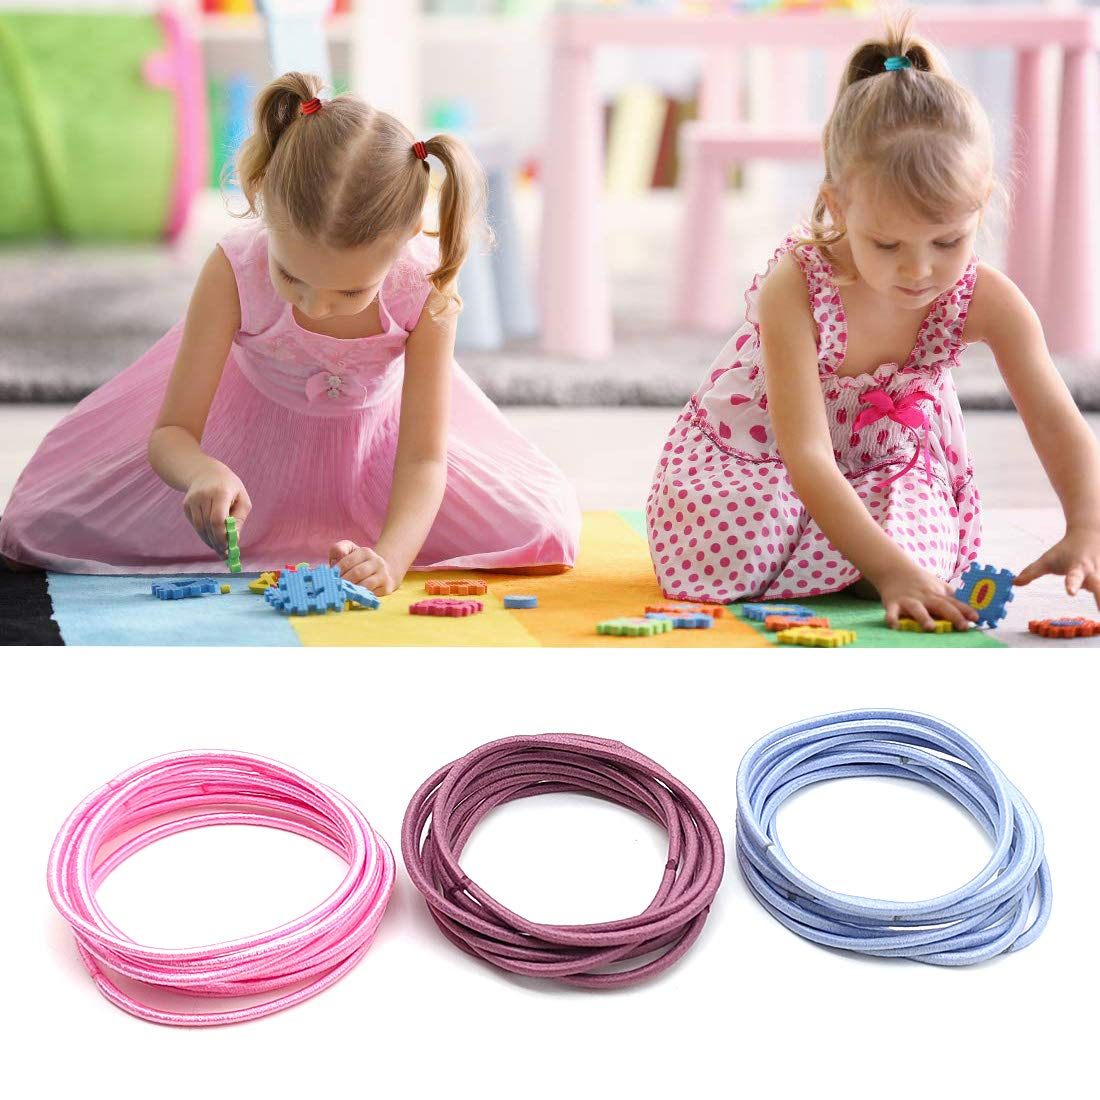 330 Pieces Multicolor No Crease Girls Hair Ties, Hair Bands ,Bulk Elastics Ponytail Holders Ties for Thick Heavy and Curly Hair (4.5 cm in Diameter, 2 mm) : Beauty